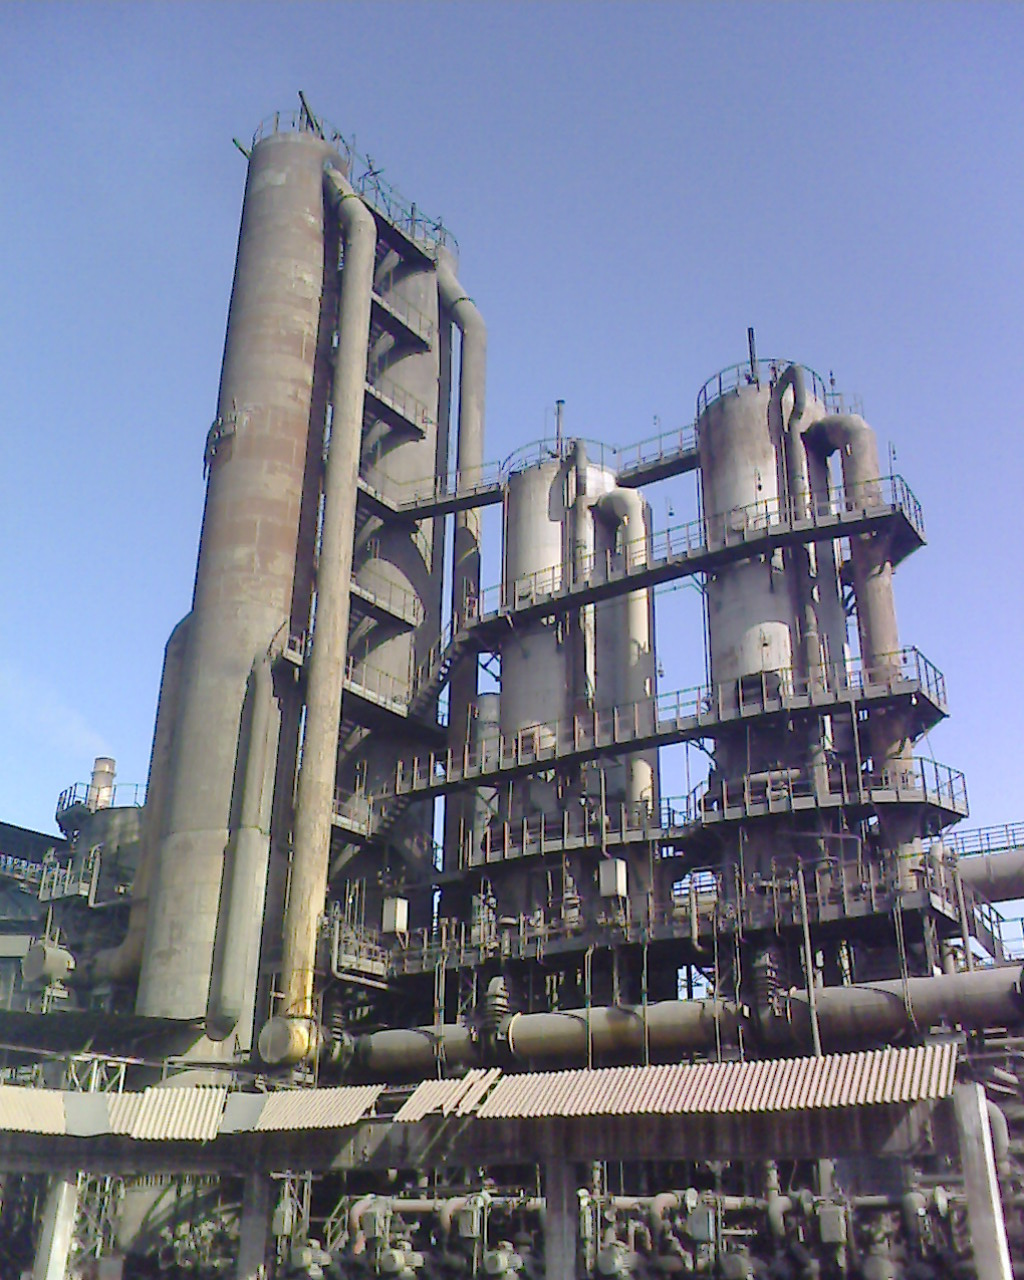 pakistan steel mills Check out executive engineer profiles at pakistan steel mills corporation, job listings & salaries review & learn skills to be a executive engineer.